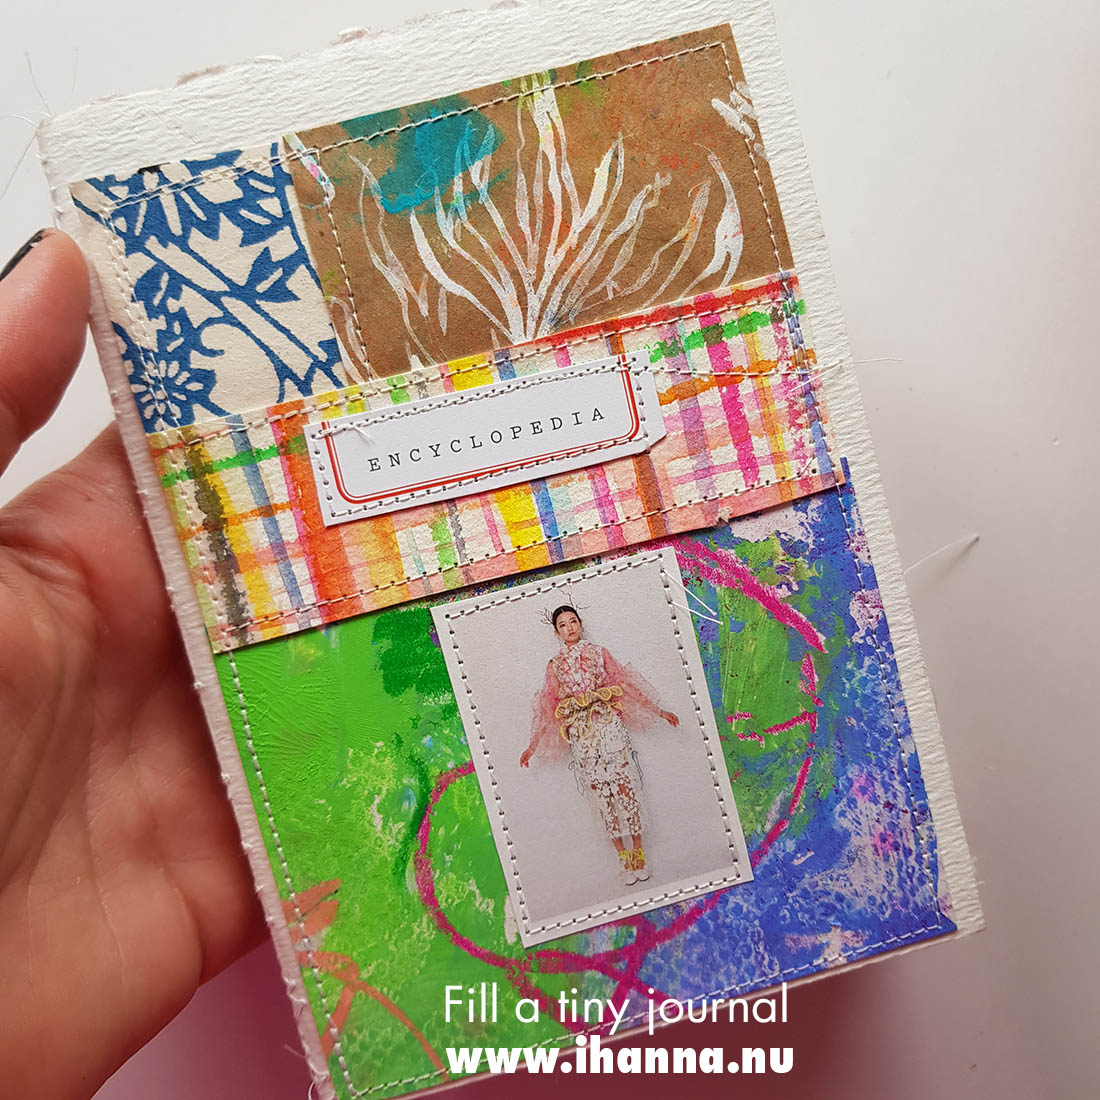 Fill a tiny journal: Heart